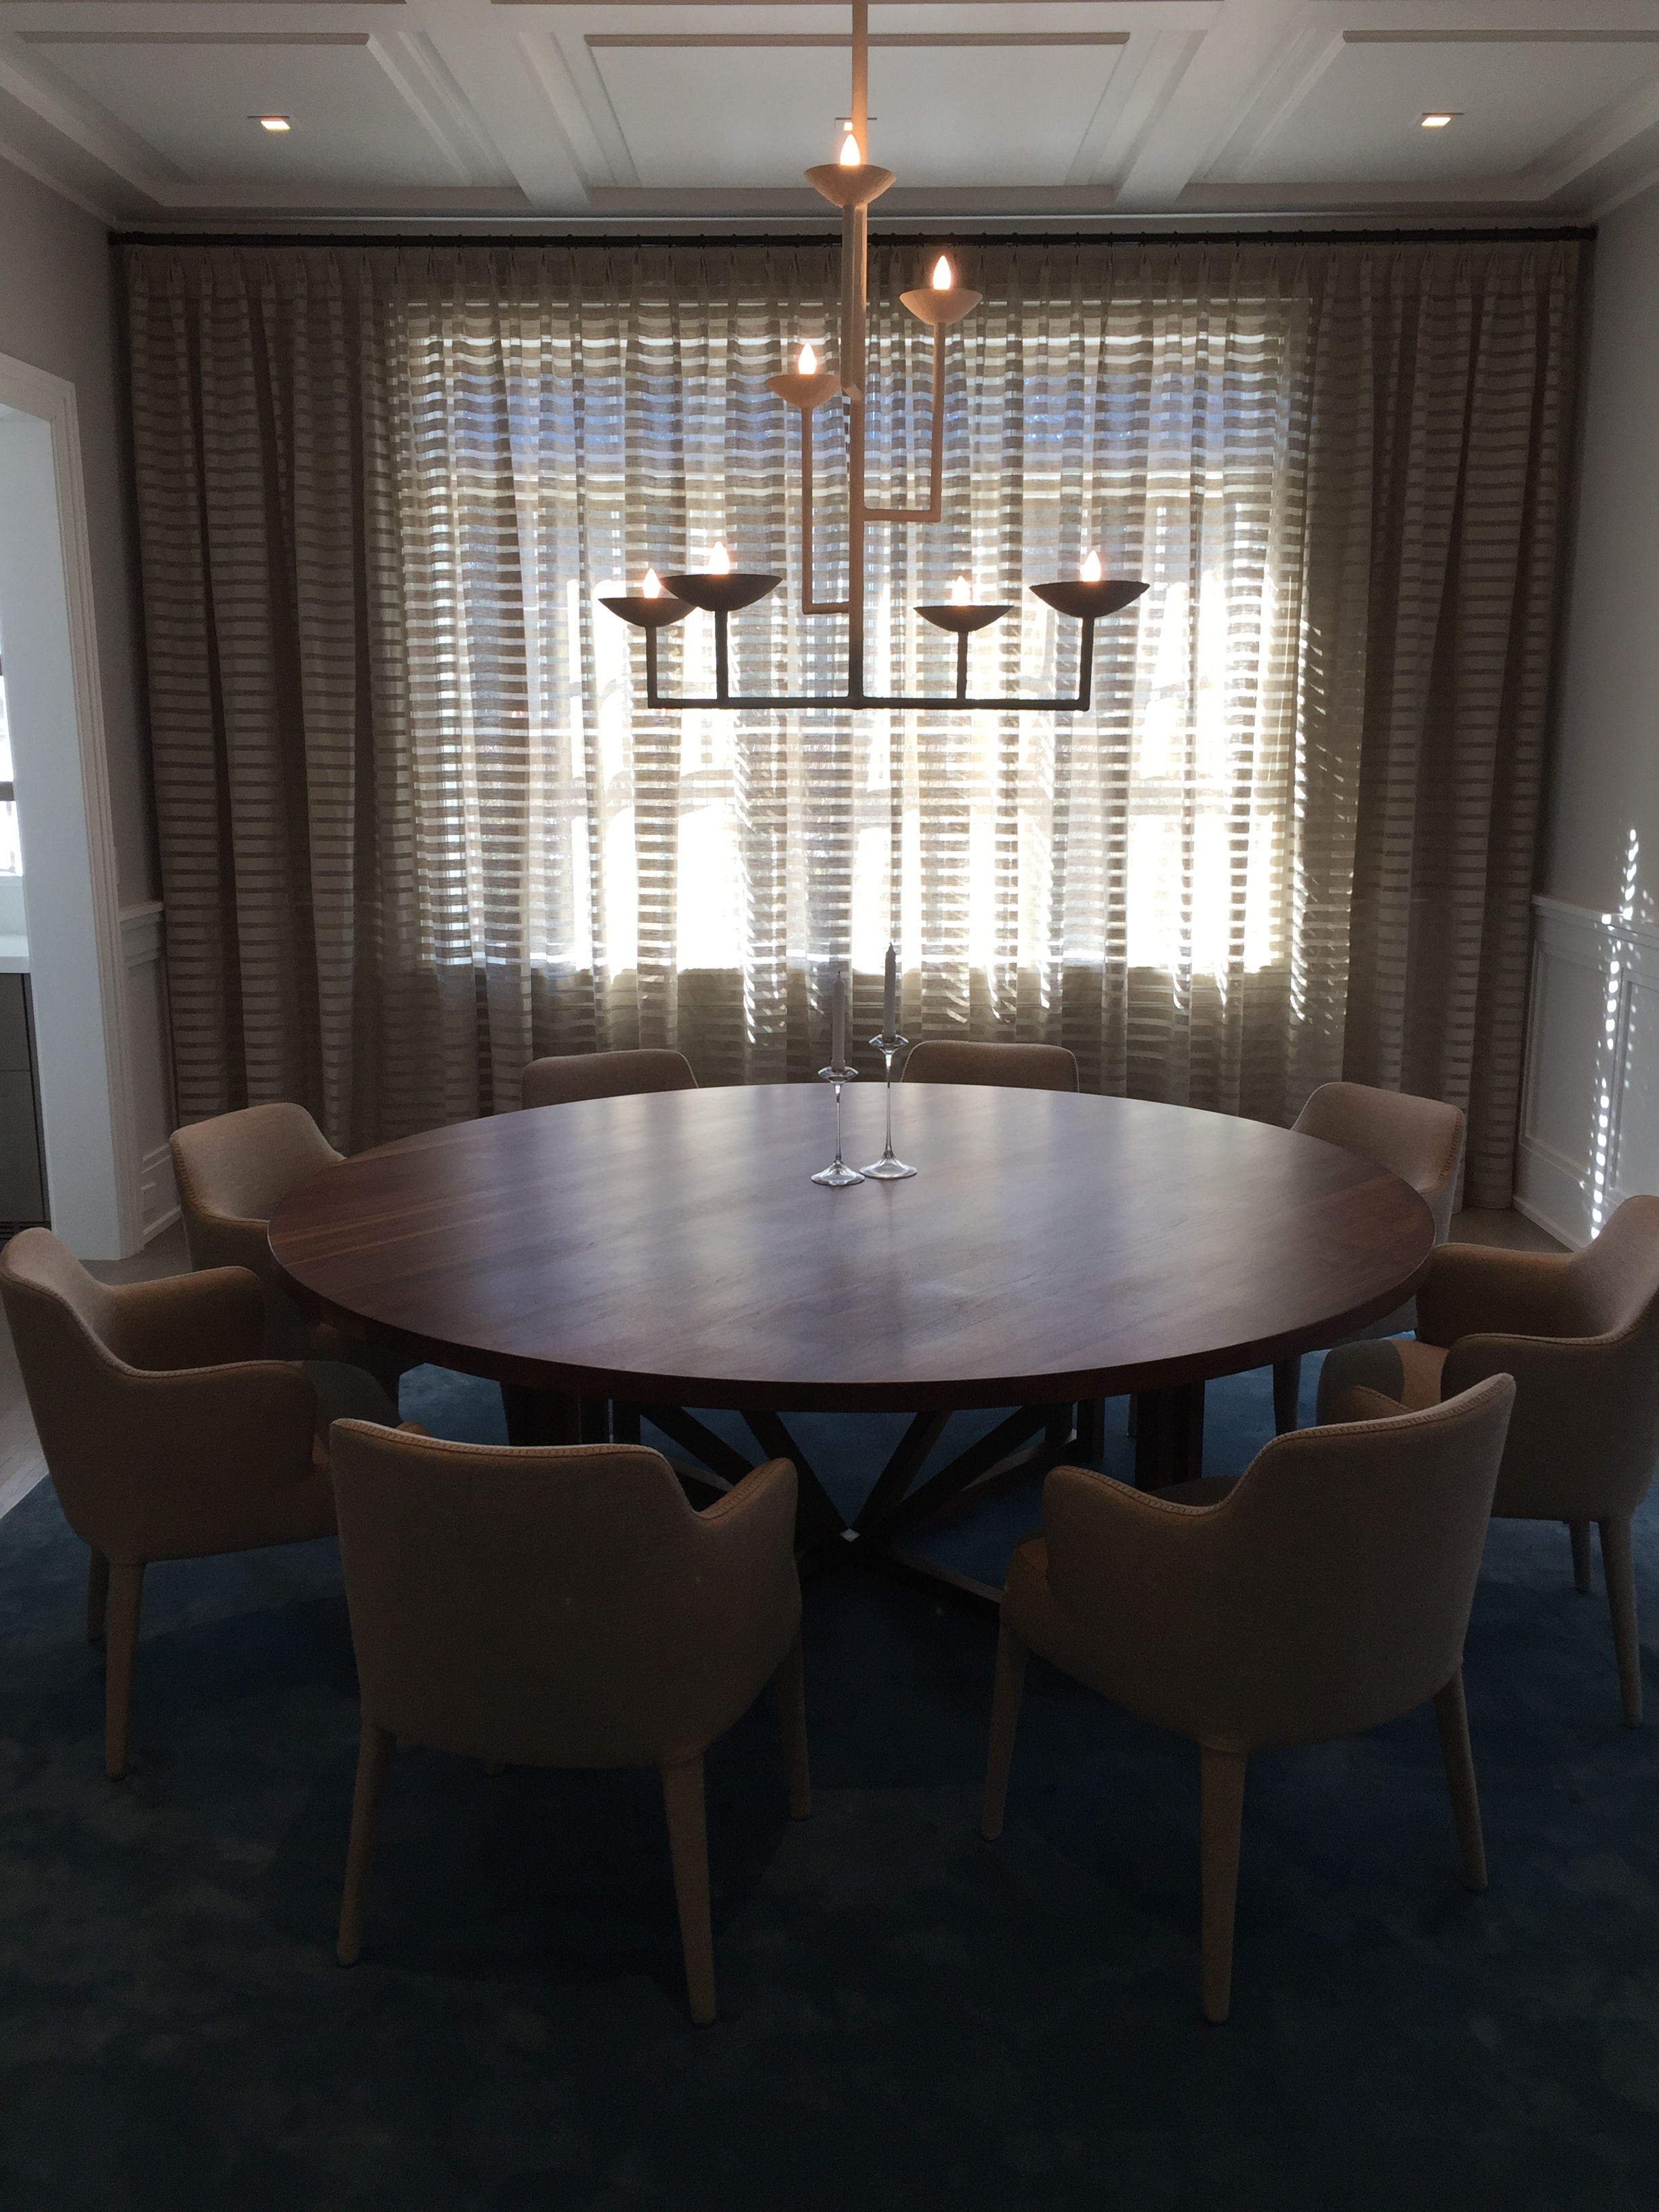 sideopenrod of and closing motorized experience button ease diningroom drapes welcome your push with antiquesilver the opening erod convenience to a home